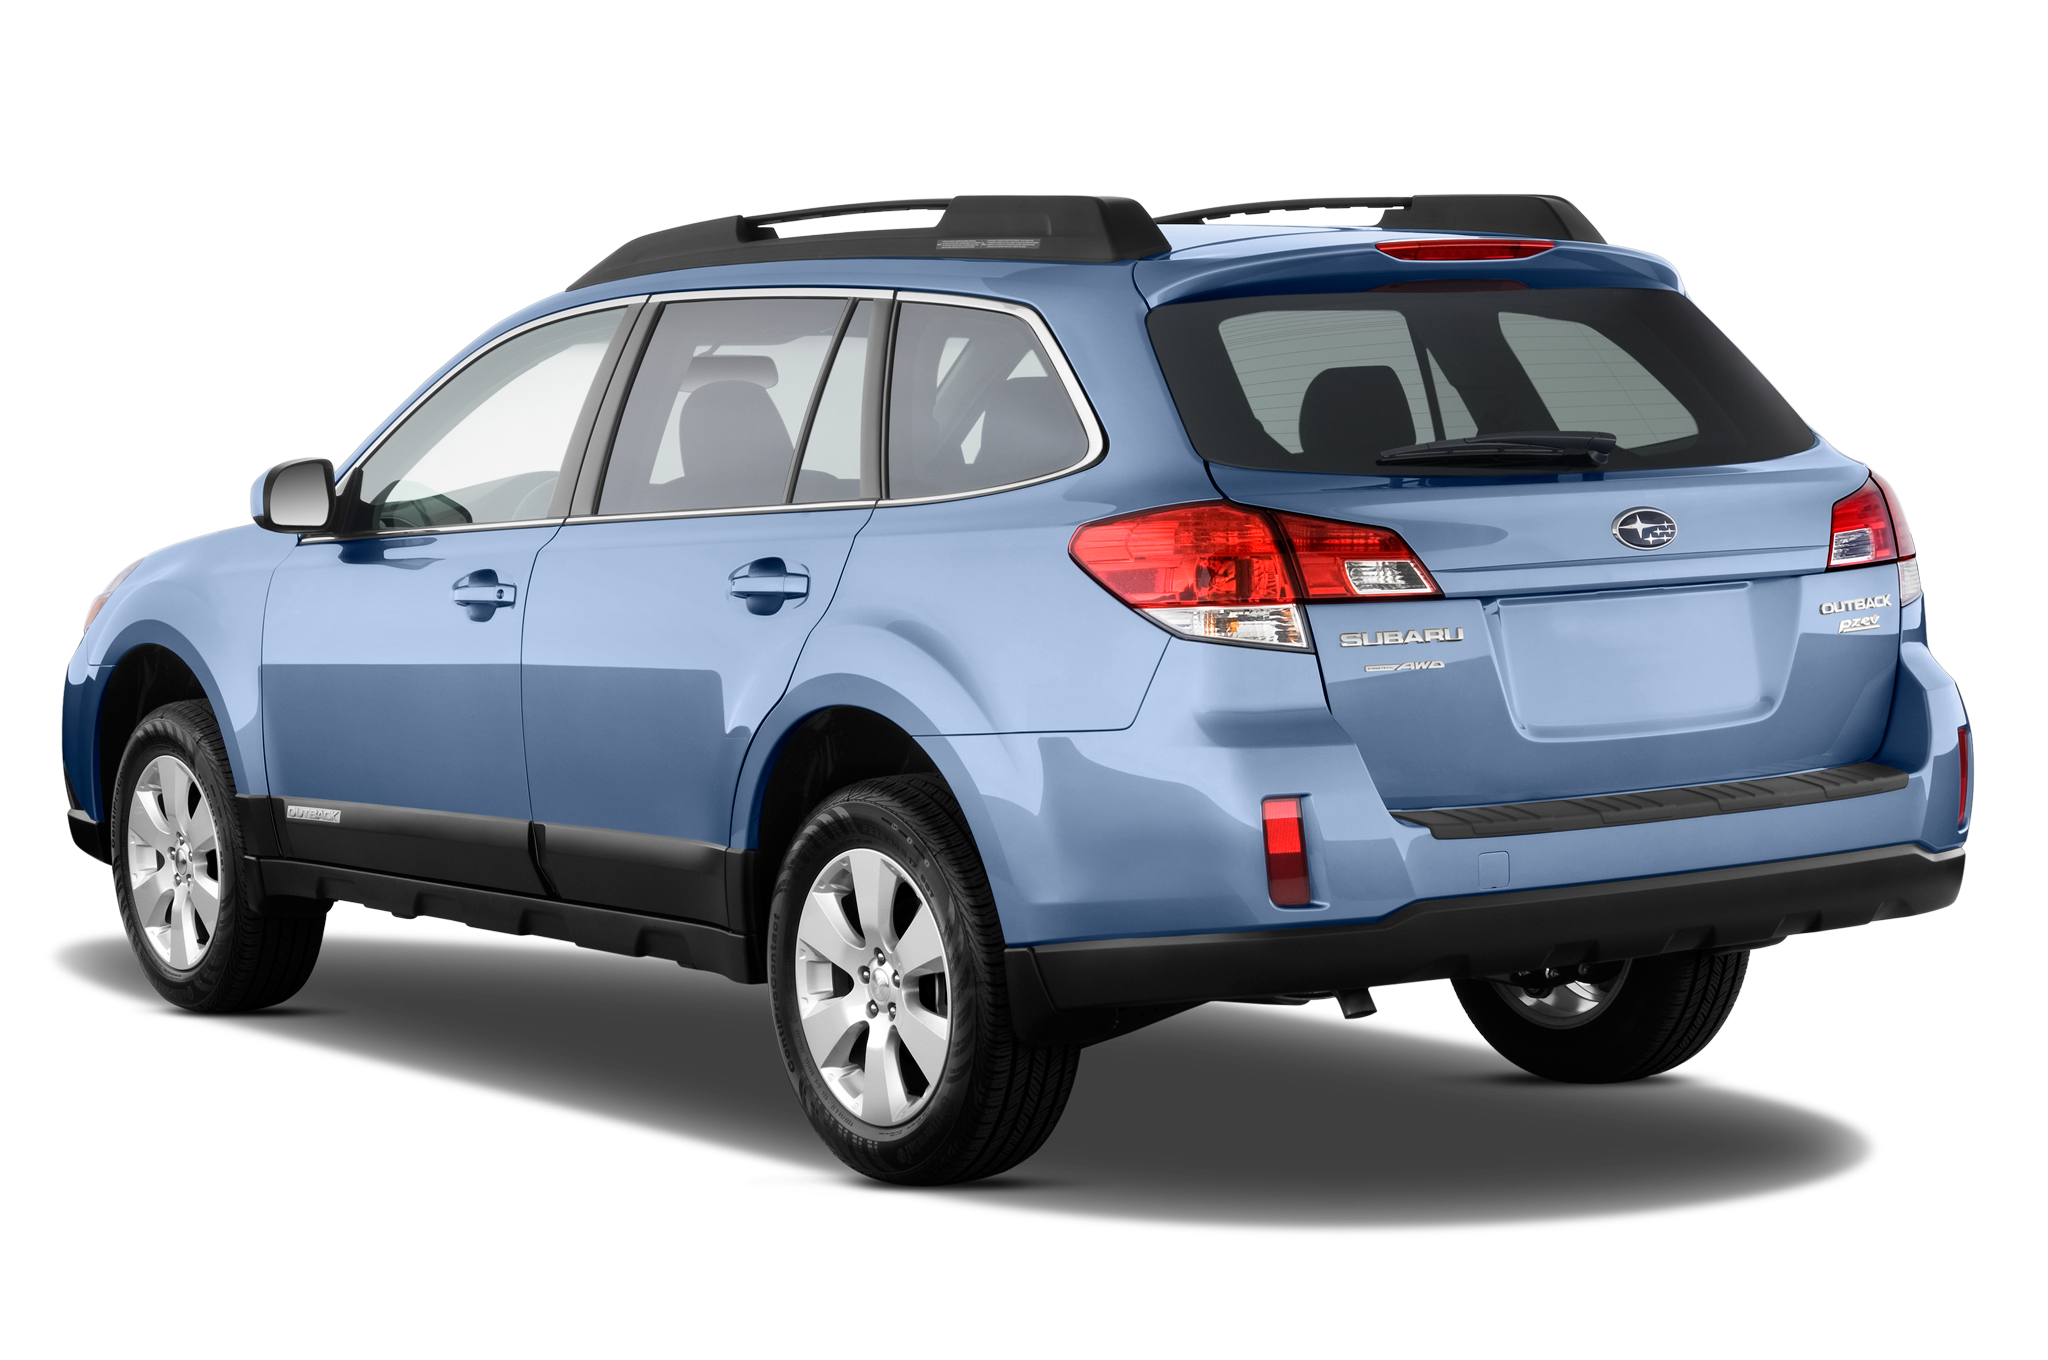 Japanese Crossover Suv Comparison Reviews Photos Details 2011 Subaru Outback Wiring Harness 12 25